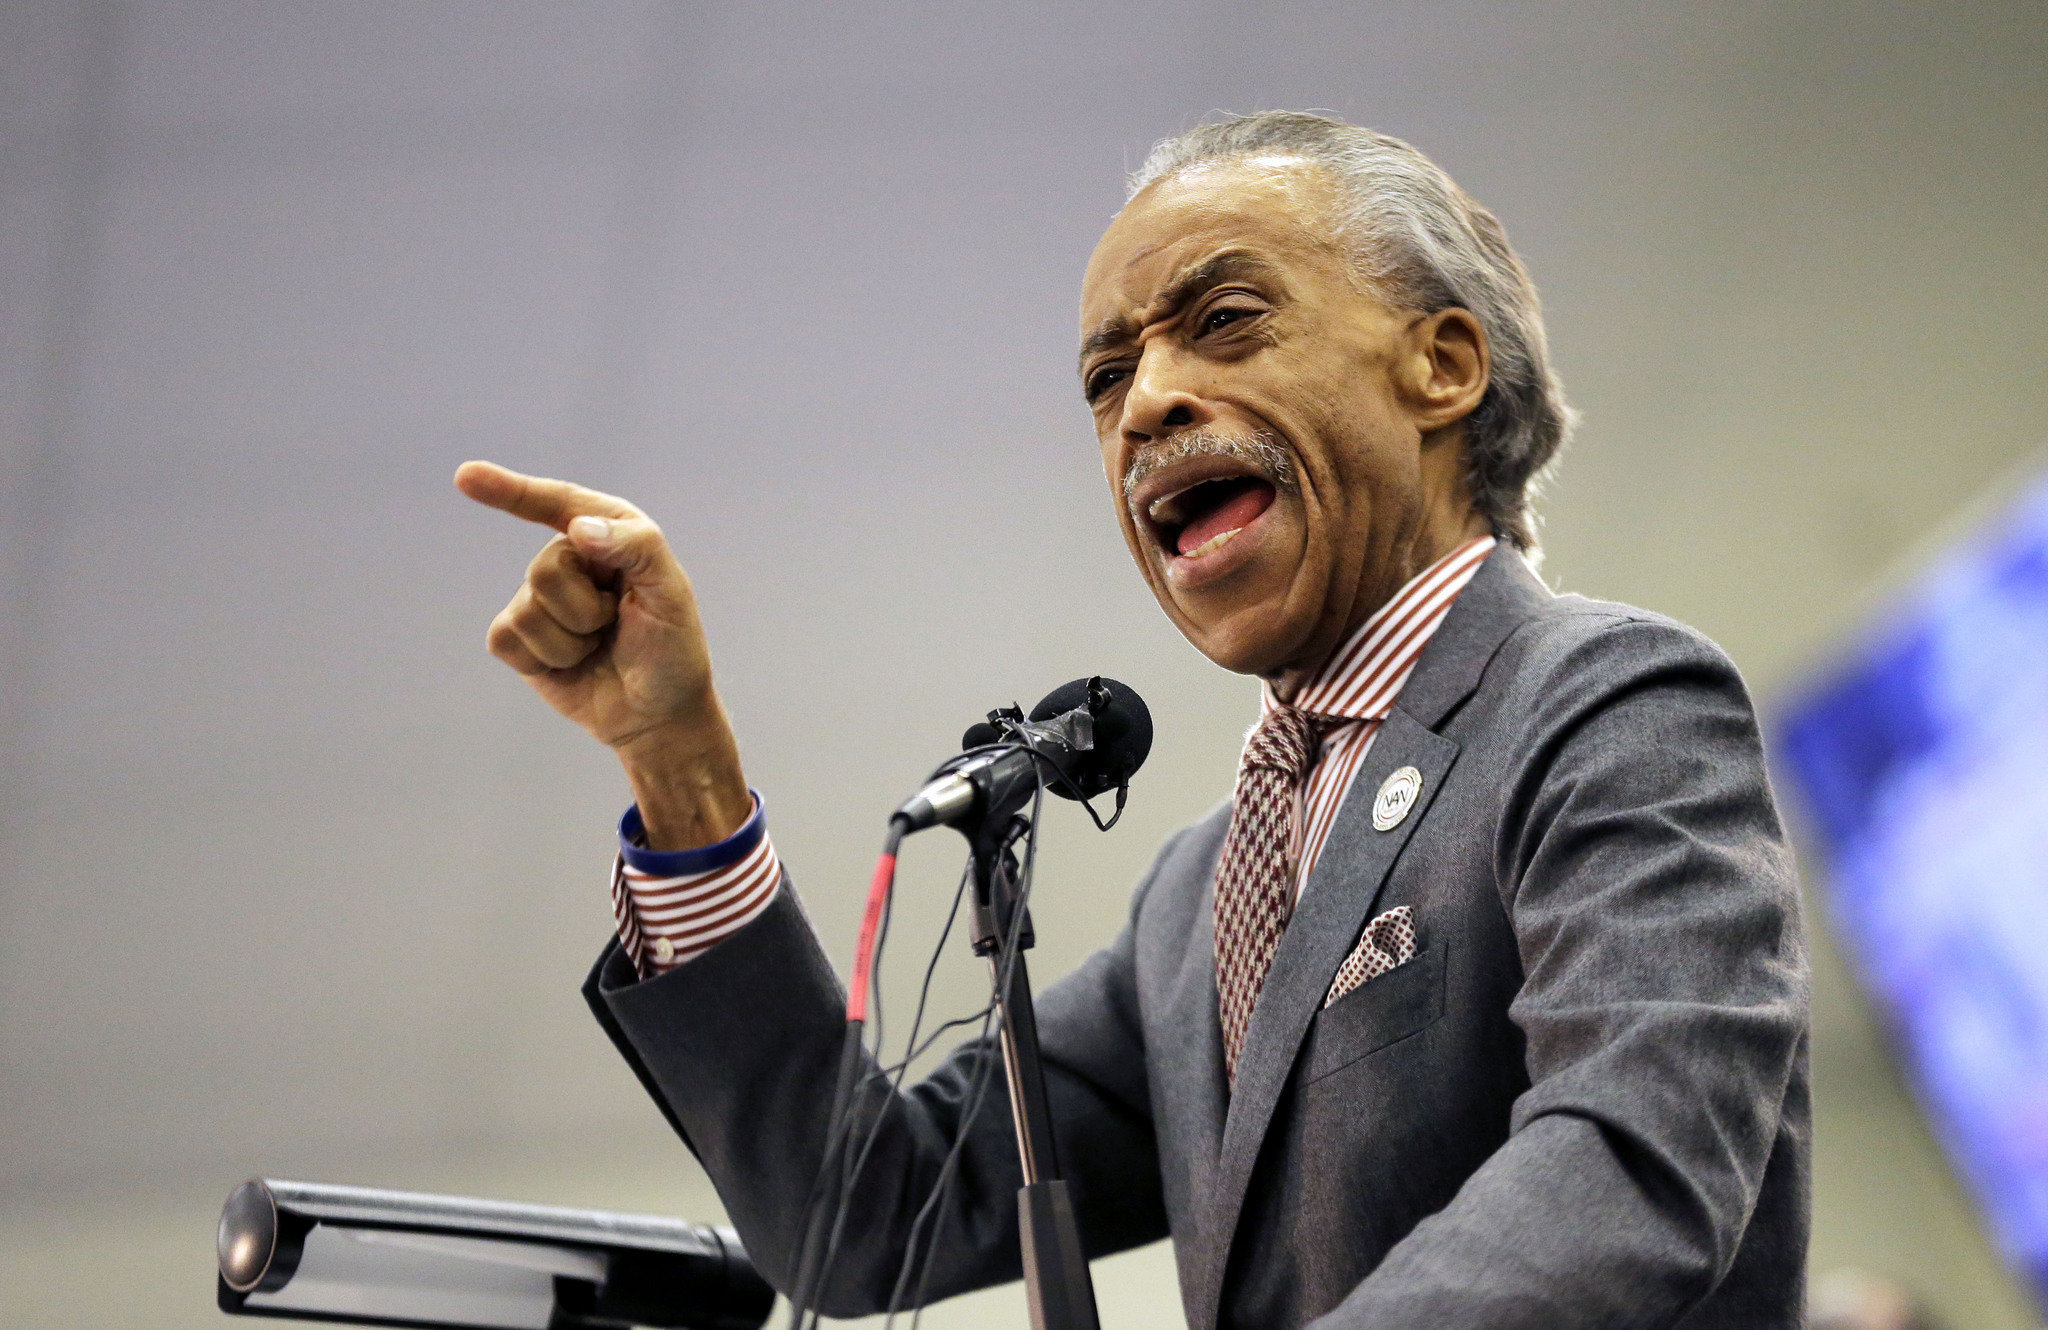 Al Sharpton Plans to Help Meek Meek the Same Way he Helped Tupac in Jail